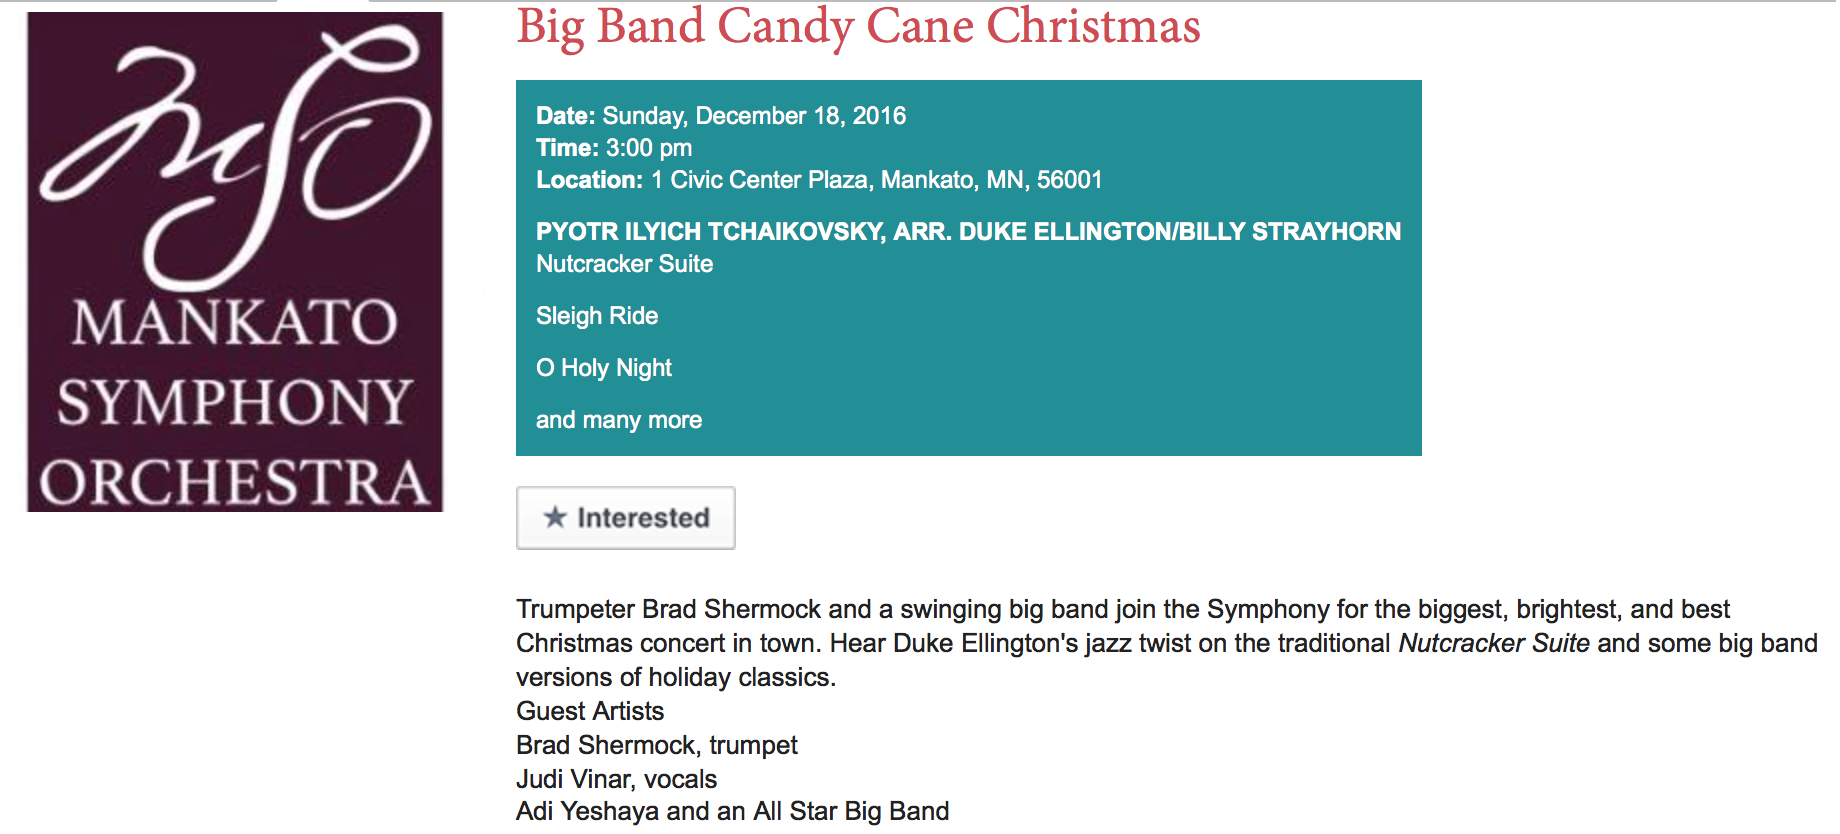 For tickets, click here  http://www.mankatosymphony.com/big-band-candy-cane-christmas-0